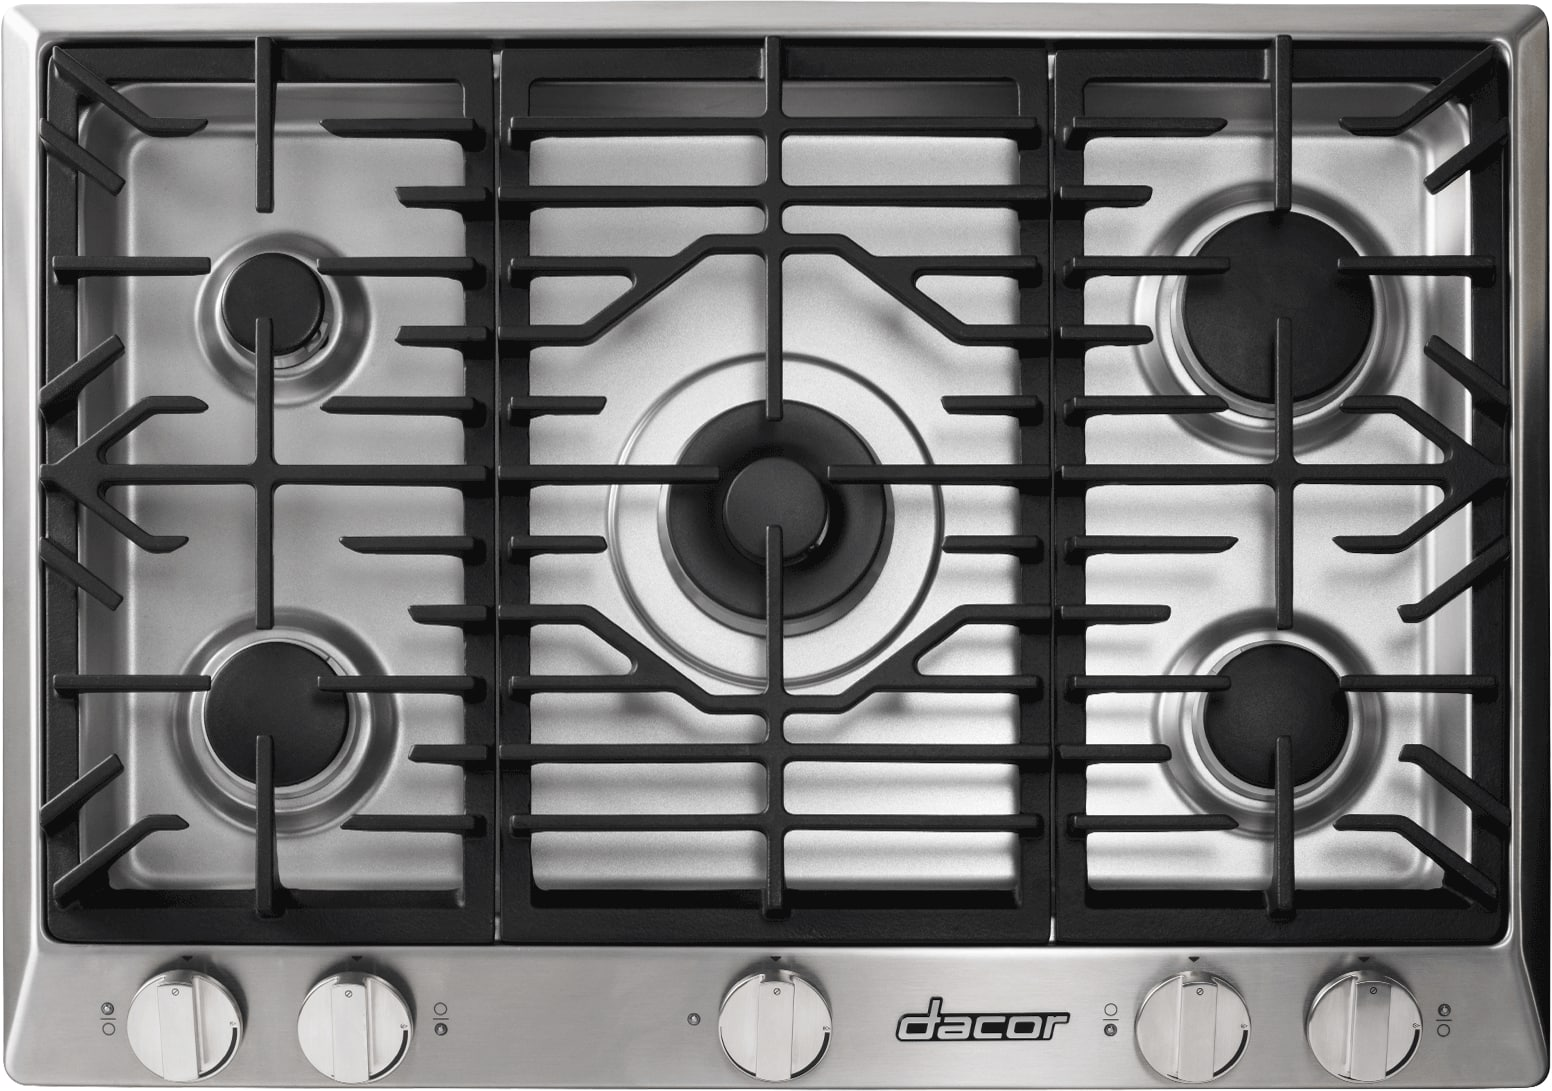 Dacor RNCT305GSLP 30 Inch Gas Cooktop With 5 Sealed Burners, SimmerSear  Burner W/ Melting Feature, Continuous Grates, Perma Flame Ignition, ...